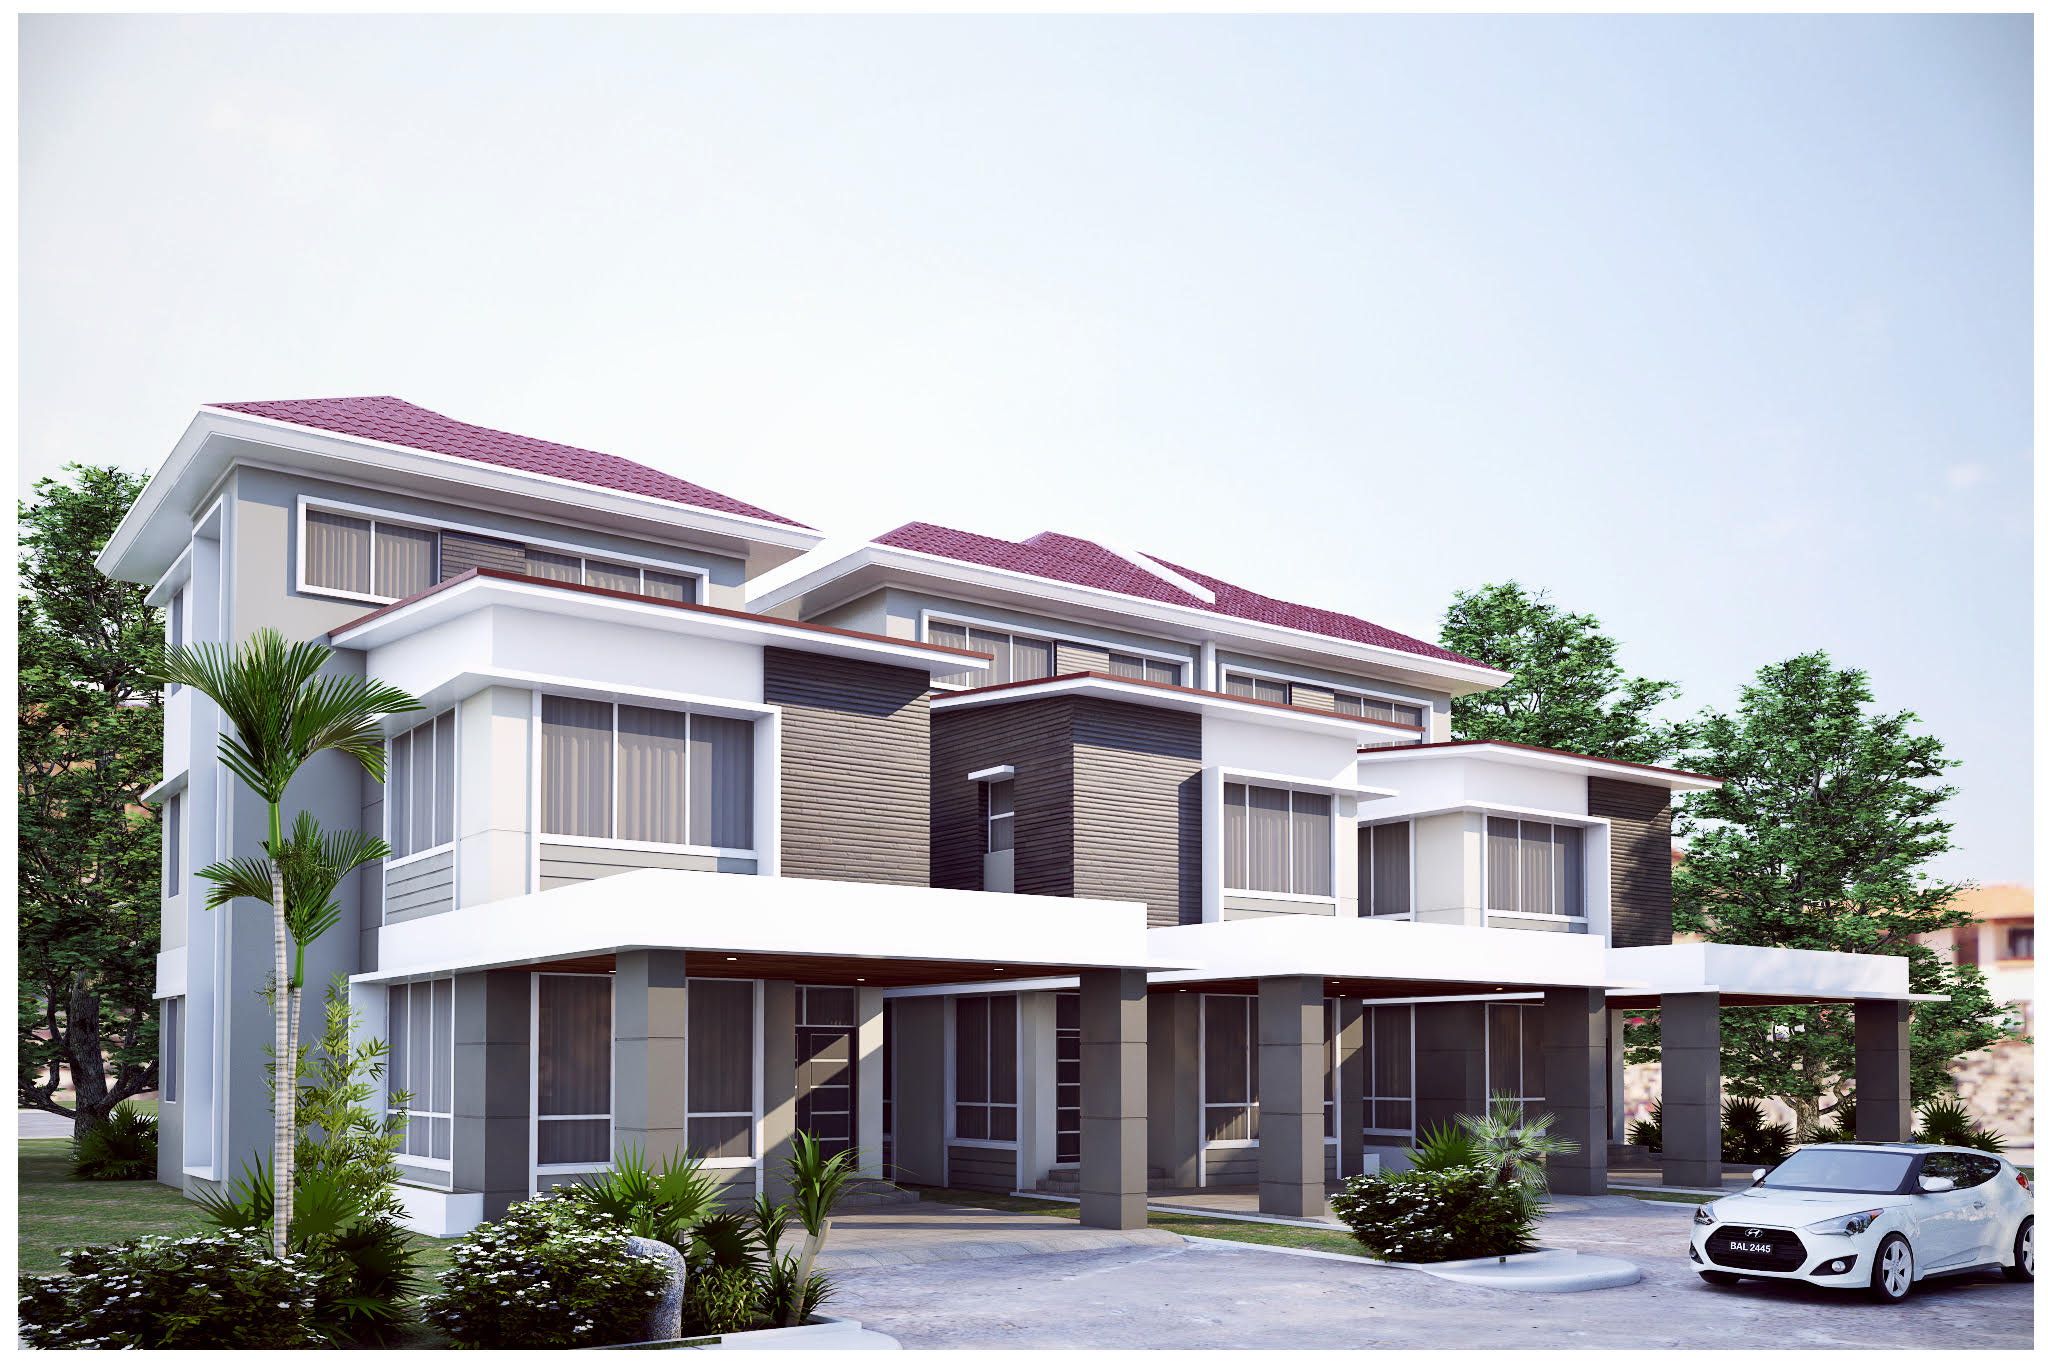 Pan villa properties proposed the palm tanah jambu 3 for The terrace land and house